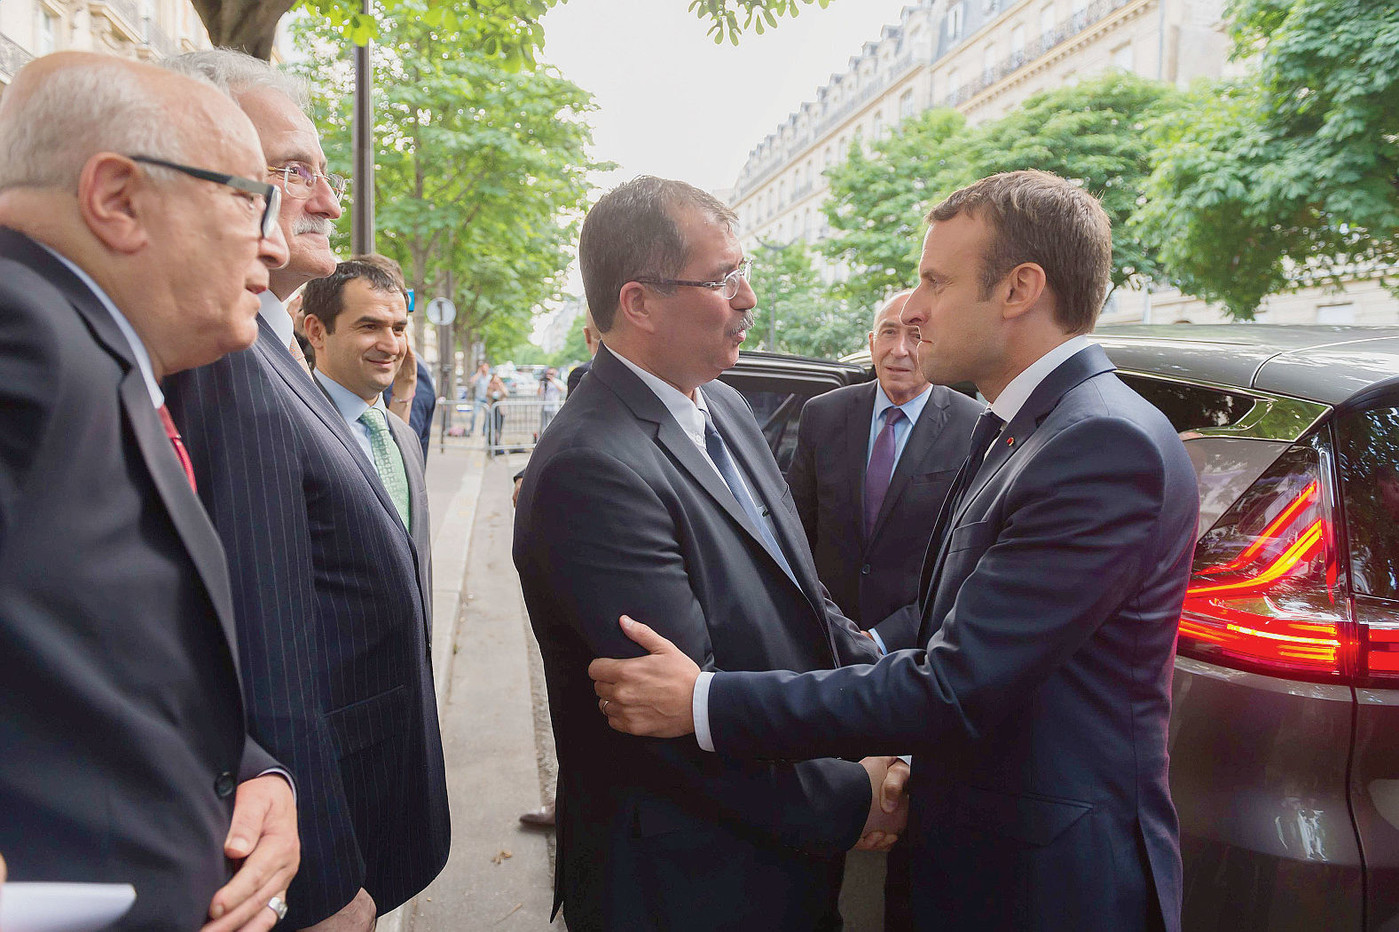 Macron: the history of sexual perversions